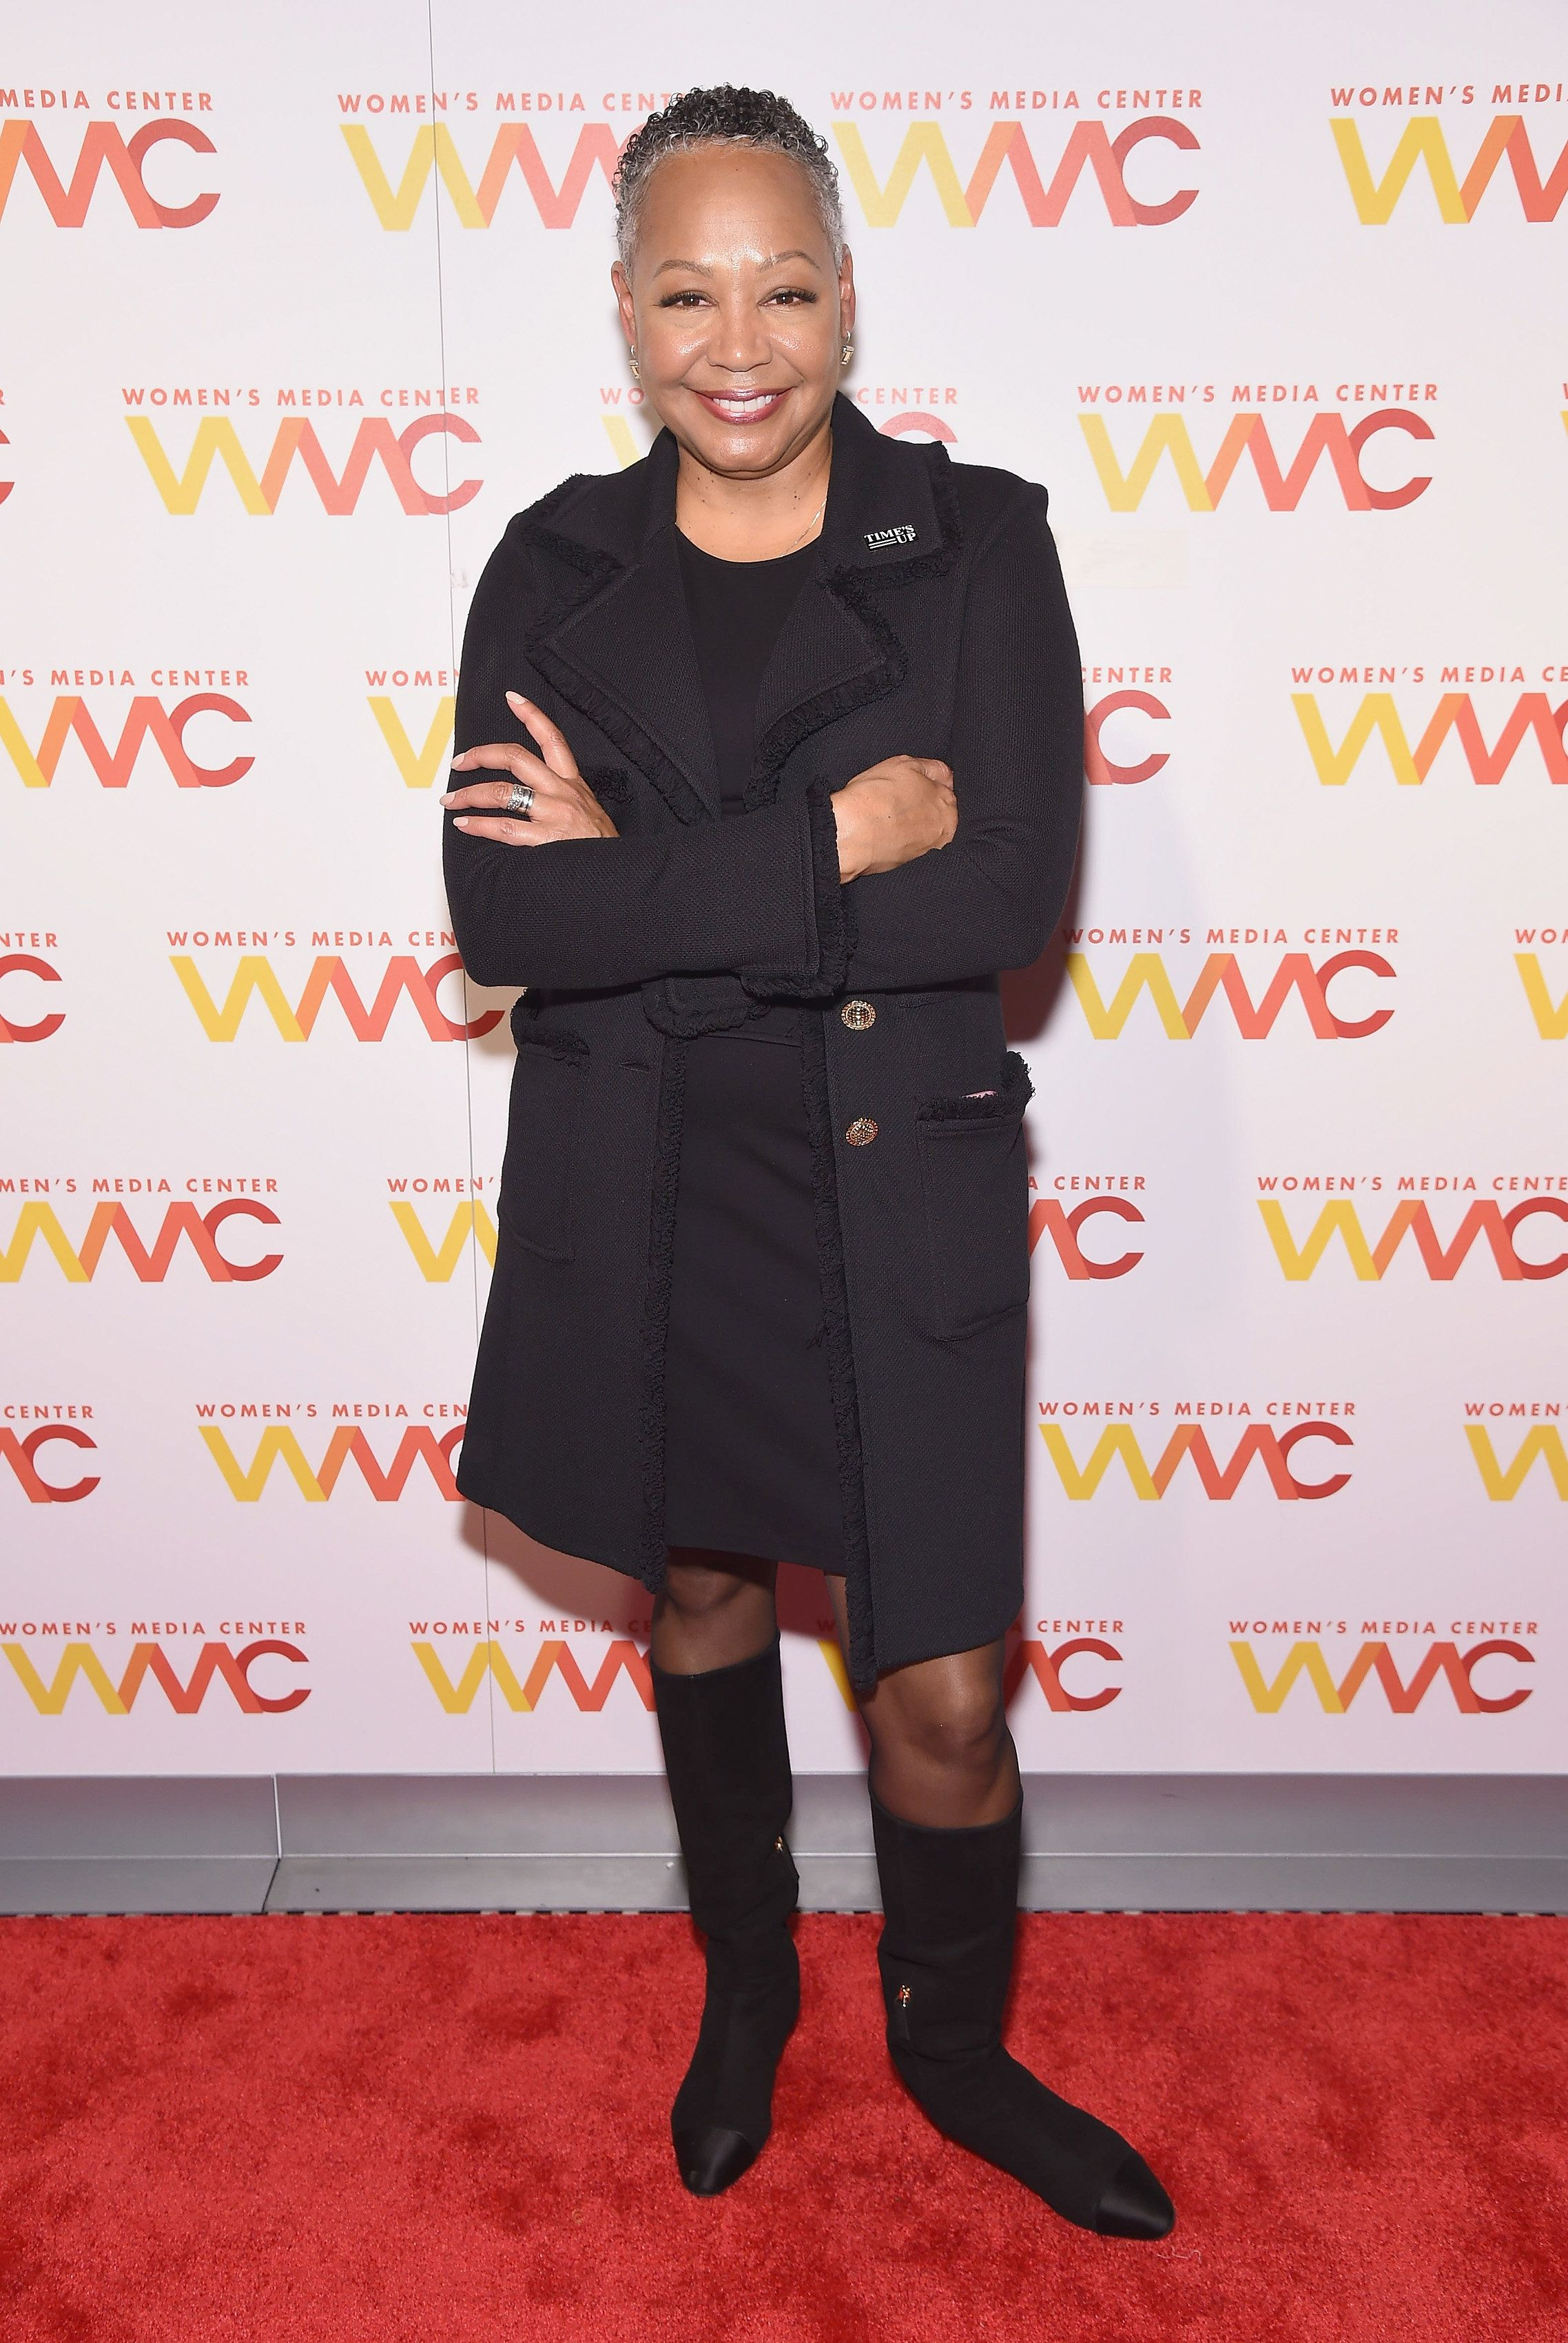 NEW YORK, NY - NOVEMBER 01:  First President & CEO of Time's Up, event honoree Lisa Borders  attends the Women's Media Center 2018 Women's Media Awards at Capitale on November 1, 2018 in New York City.  (Photo by Gary Gershoff/Getty Images)